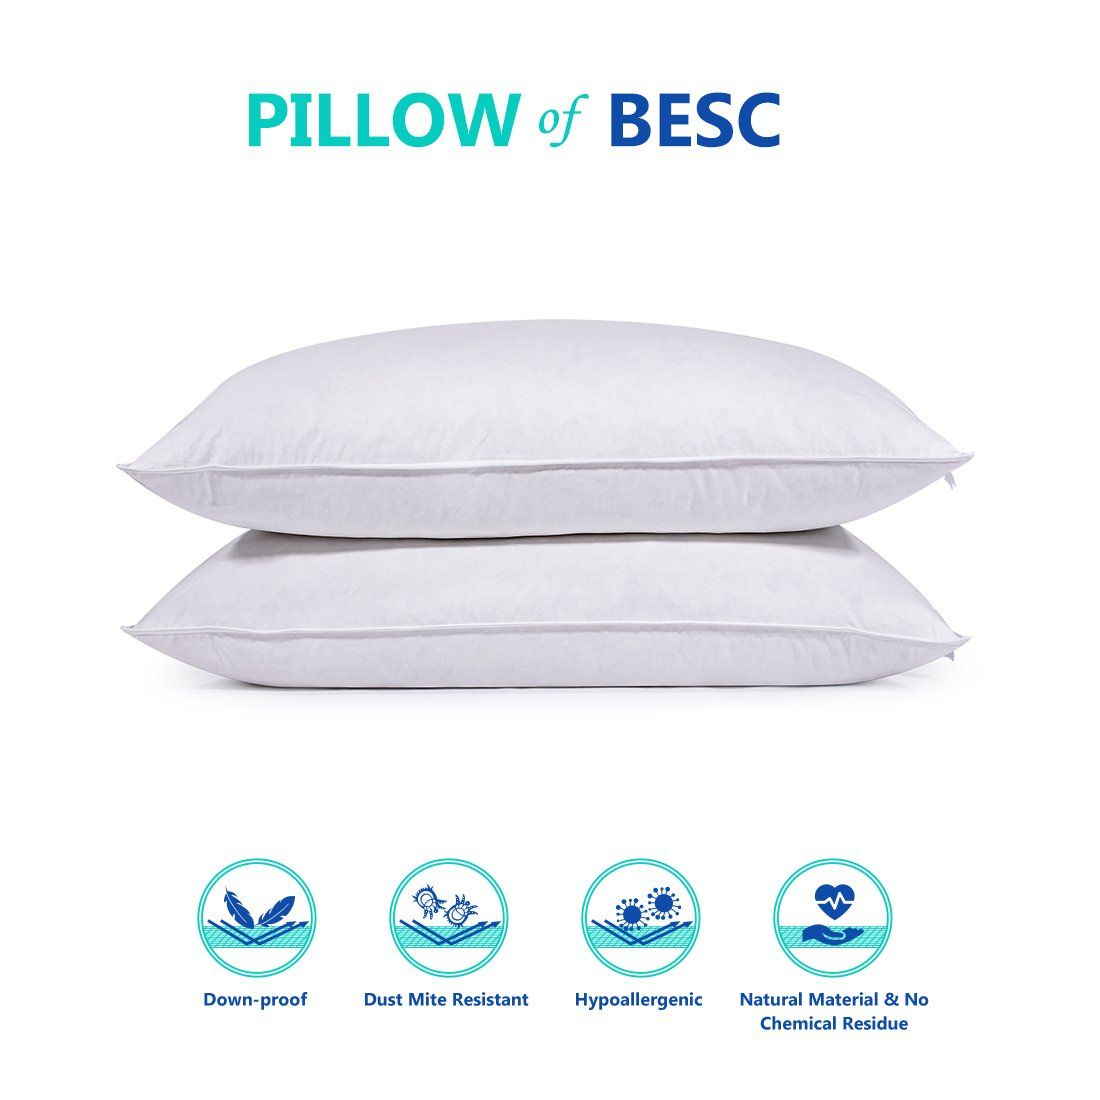 Standard Queen Size Goose Feather And Down Bedding Pillow Insert Pack Of 2 Hotel Collection Pillows For Sleeping 10 Bed Pillows Pillows Goose Feather Pillows